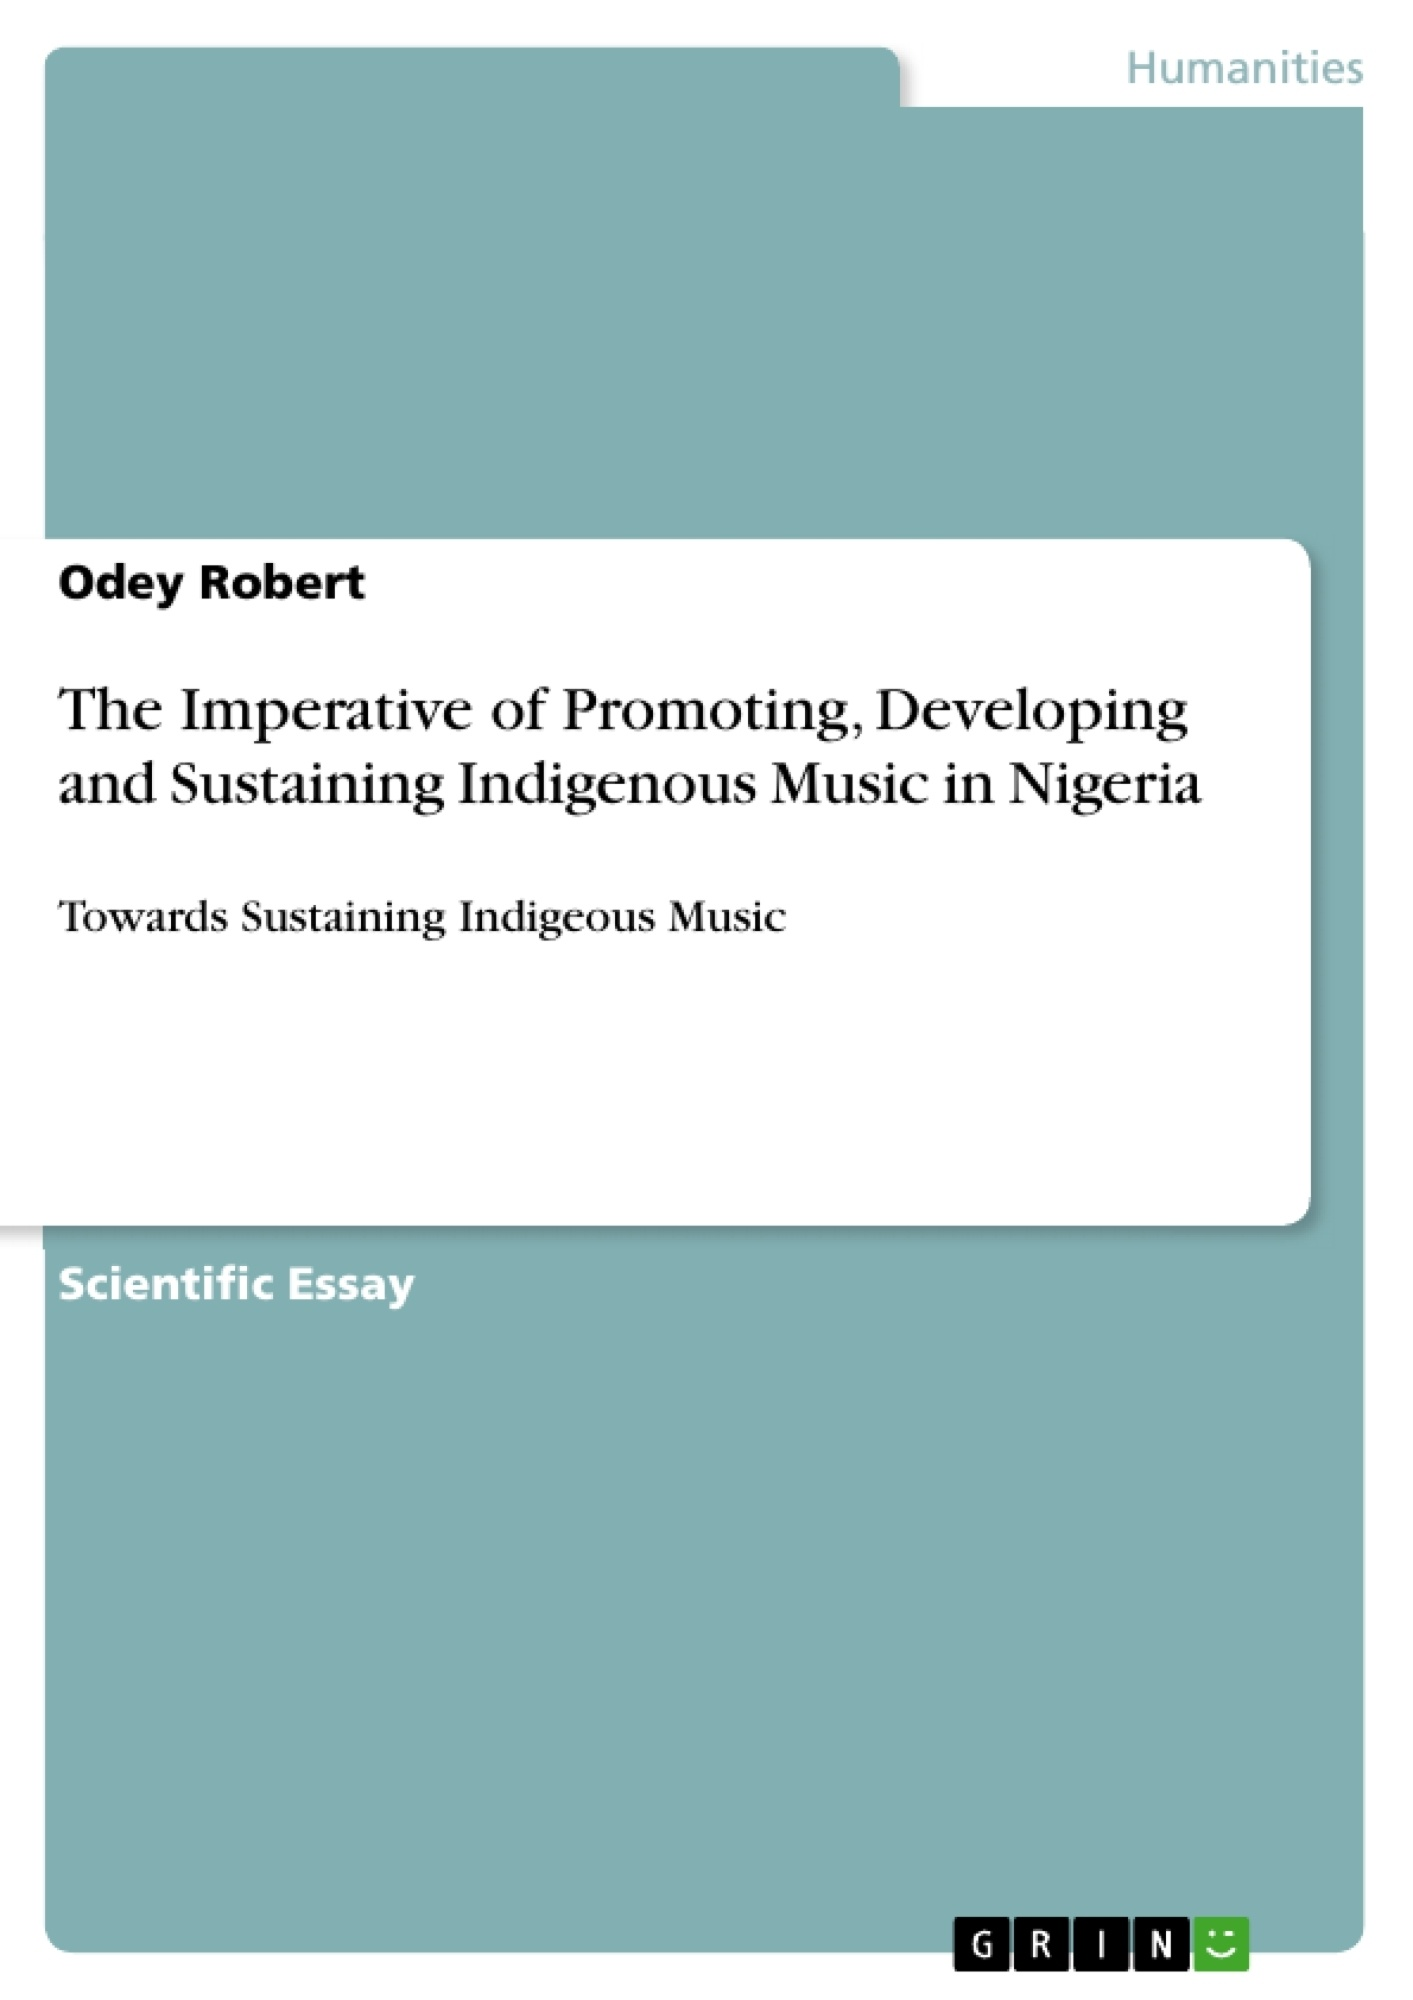 GRIN - The Imperative of Promoting, Developing and Sustaining Indigenous  Music in Nigeria